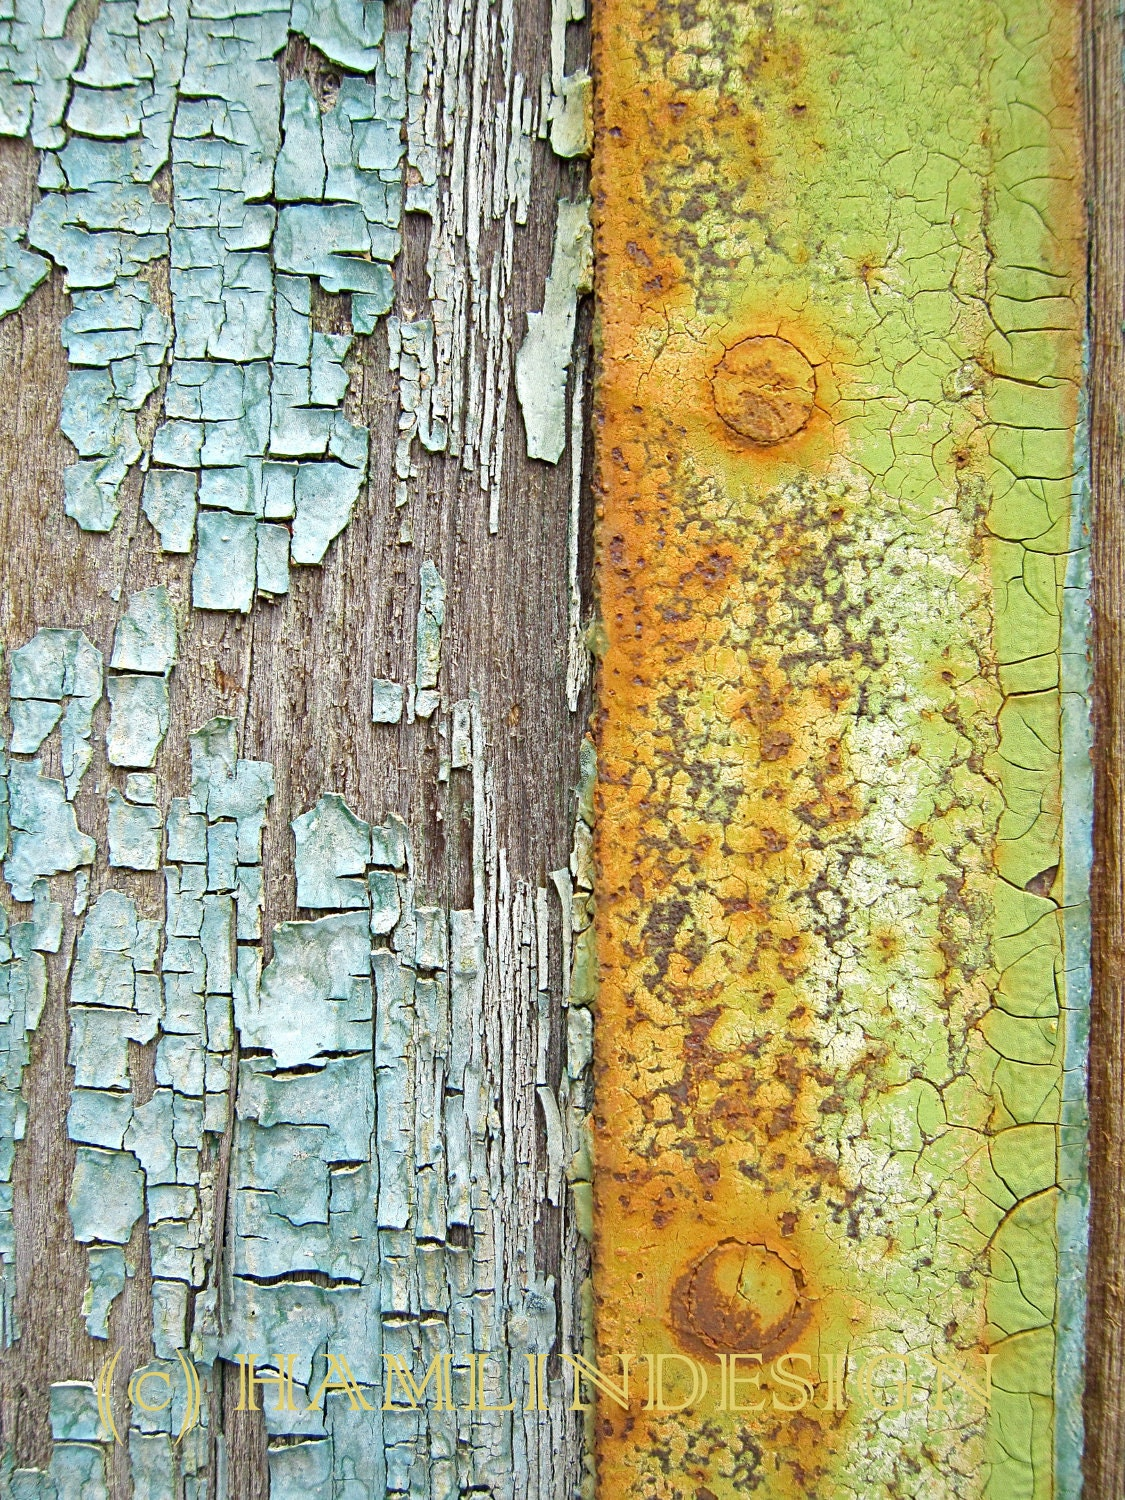 Texture Old Wood Door pastel colored cracked paint 13cm x 18cm (5in x 7in) unframed